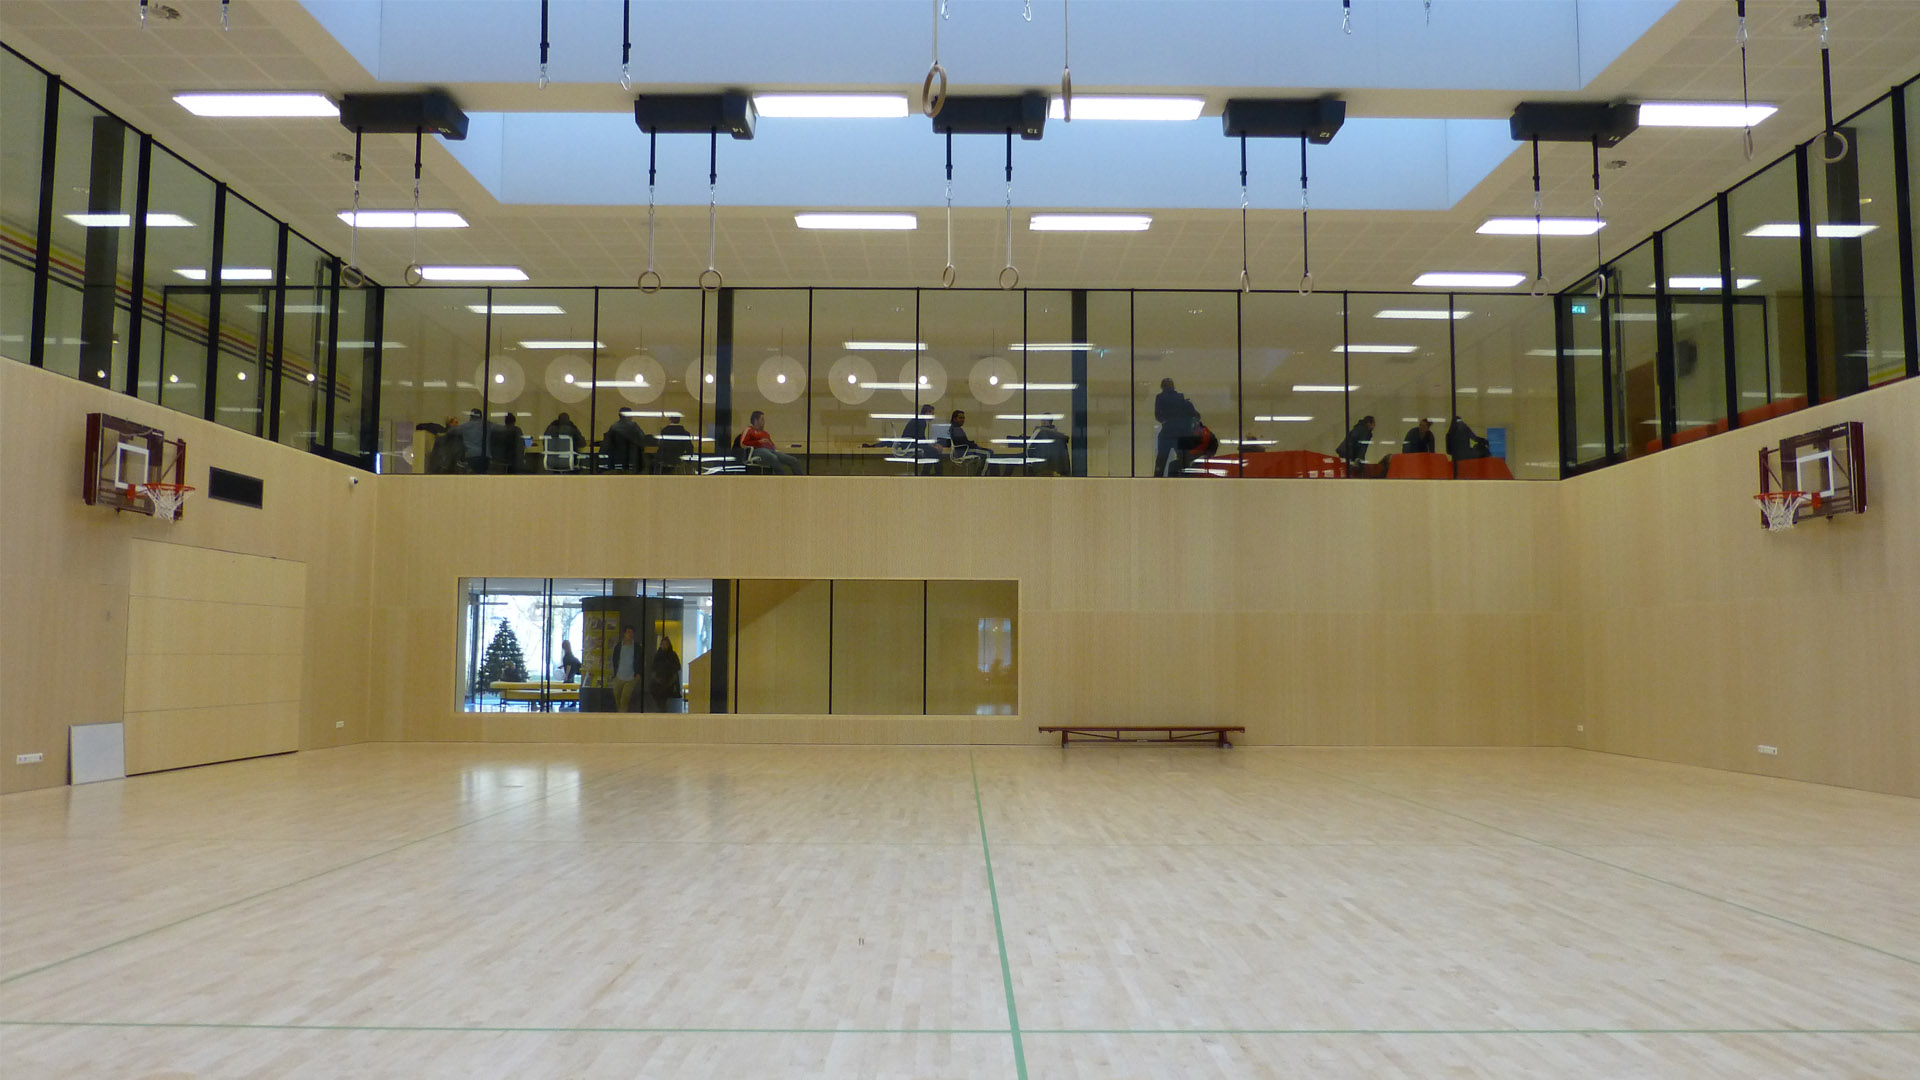 Steel glazed indoor walls in the Fontys sport high school, eindhoven, the netherlands